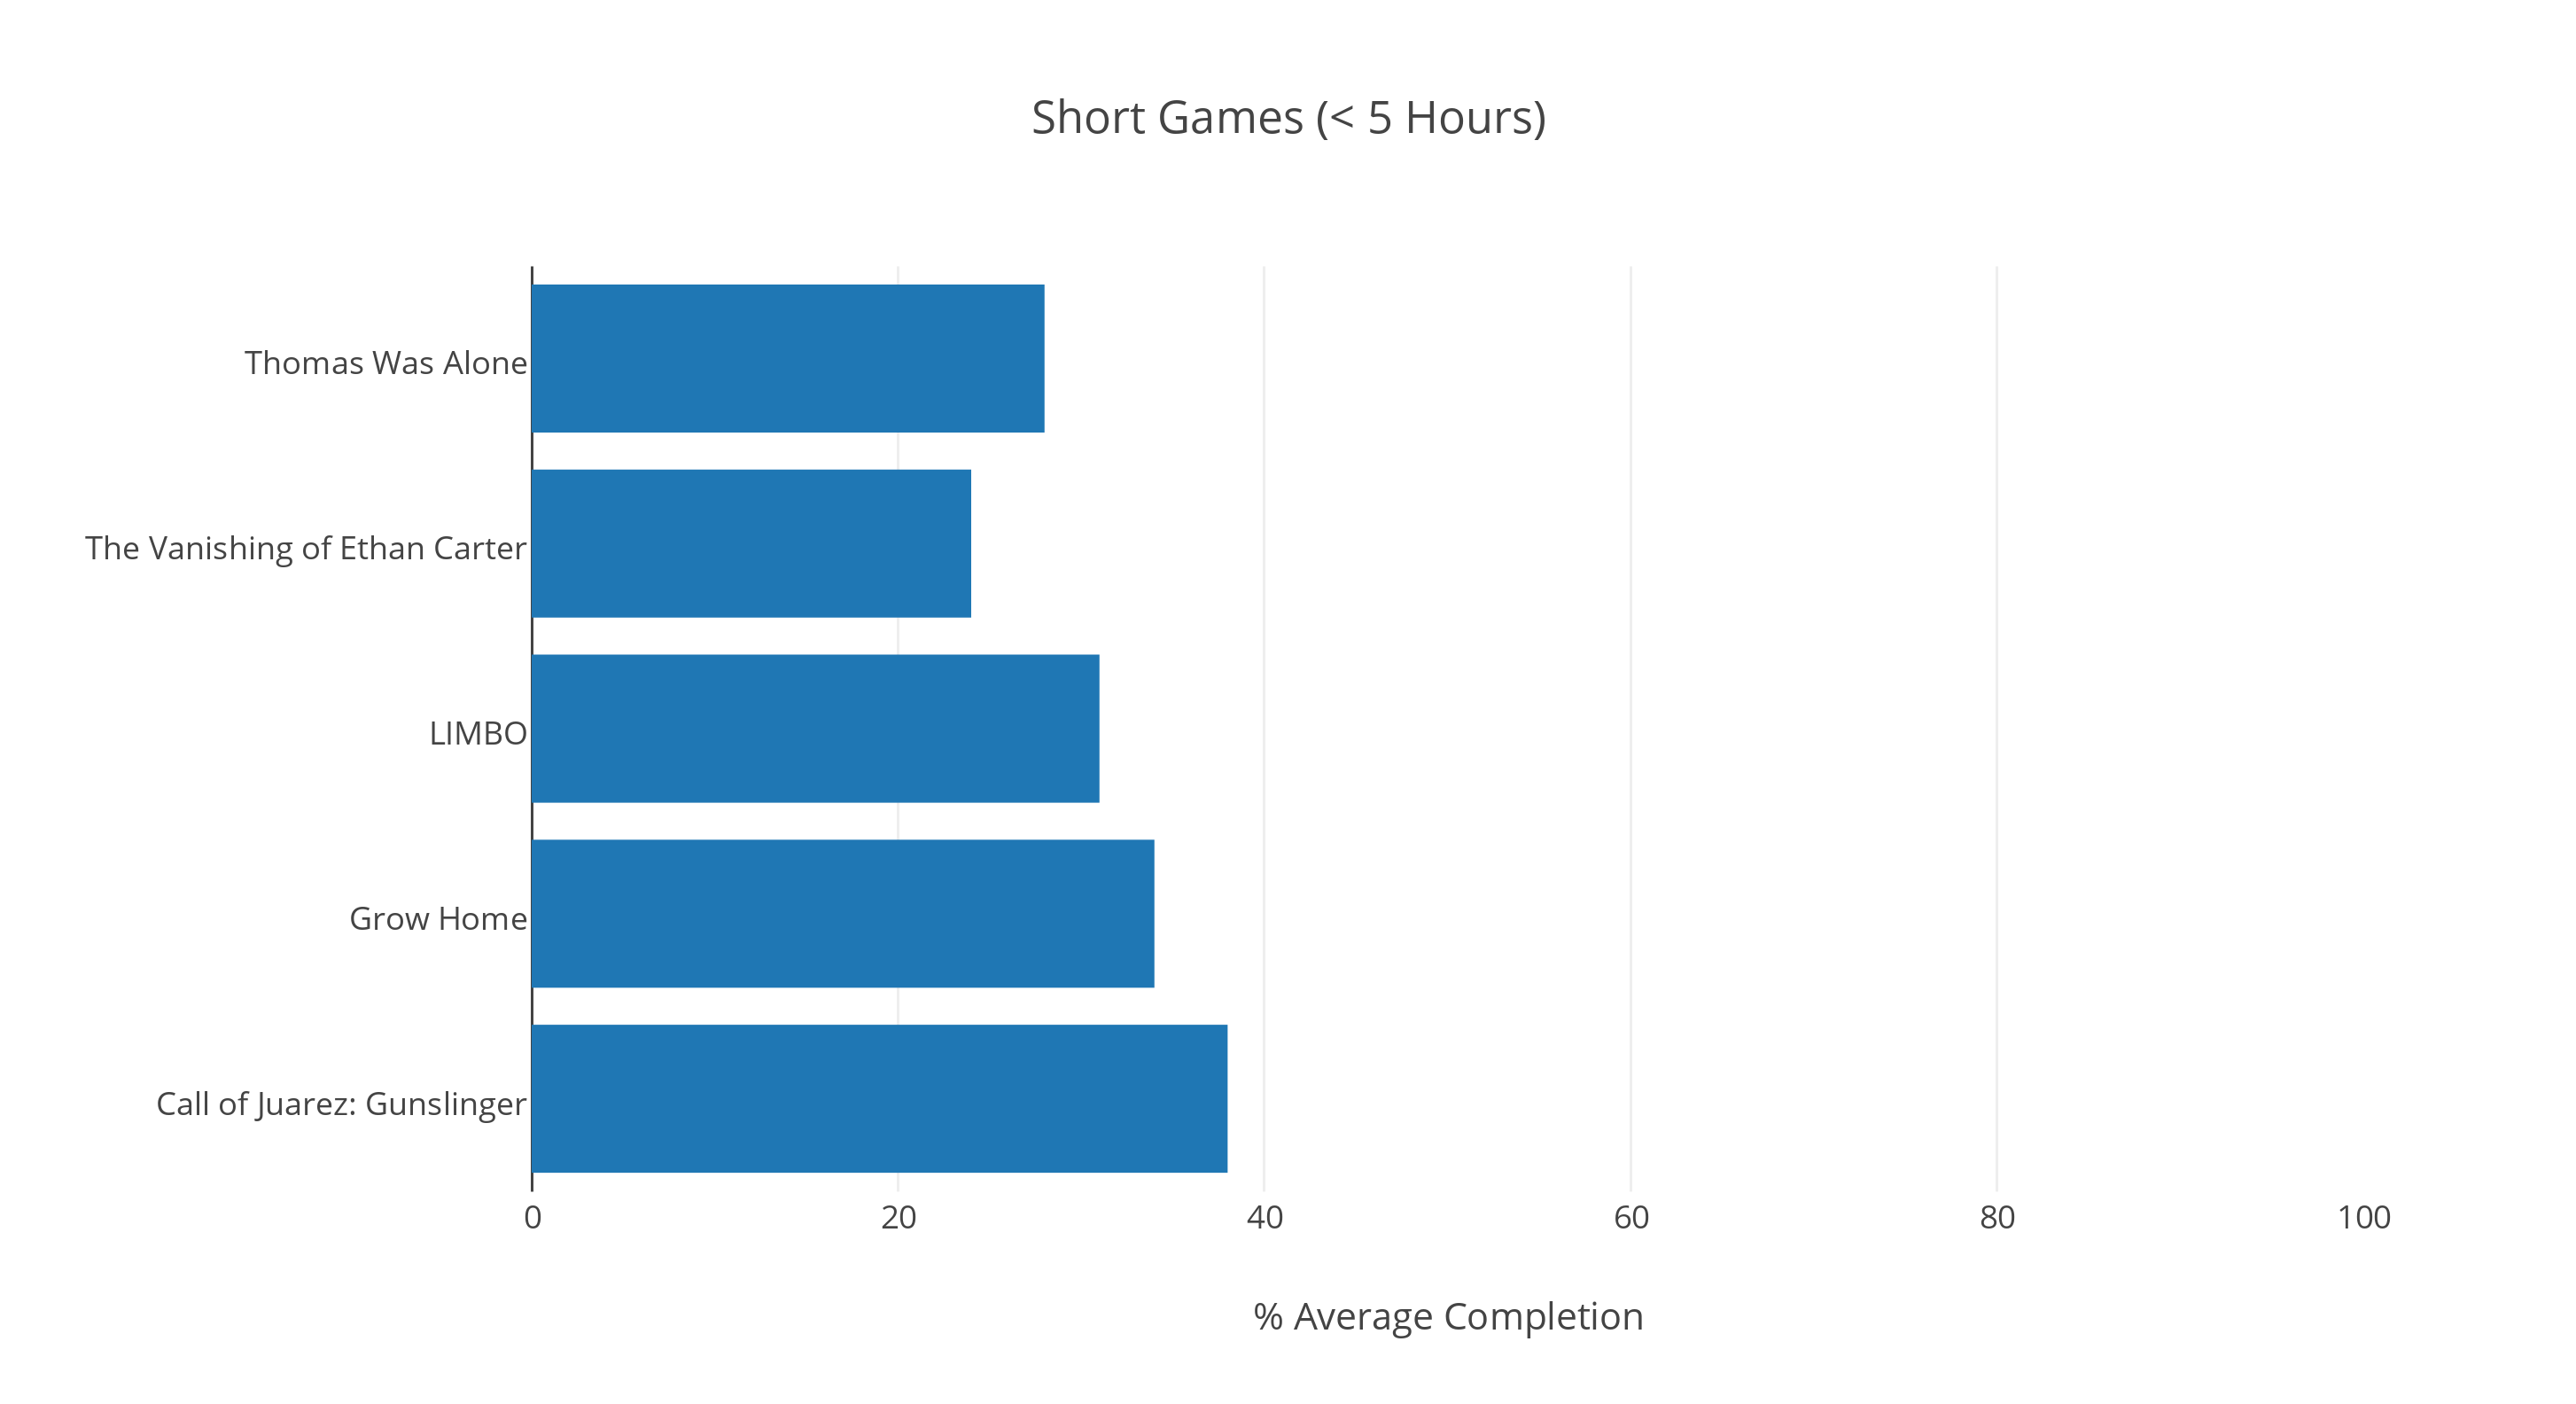 Short Games (- 5 Hours)